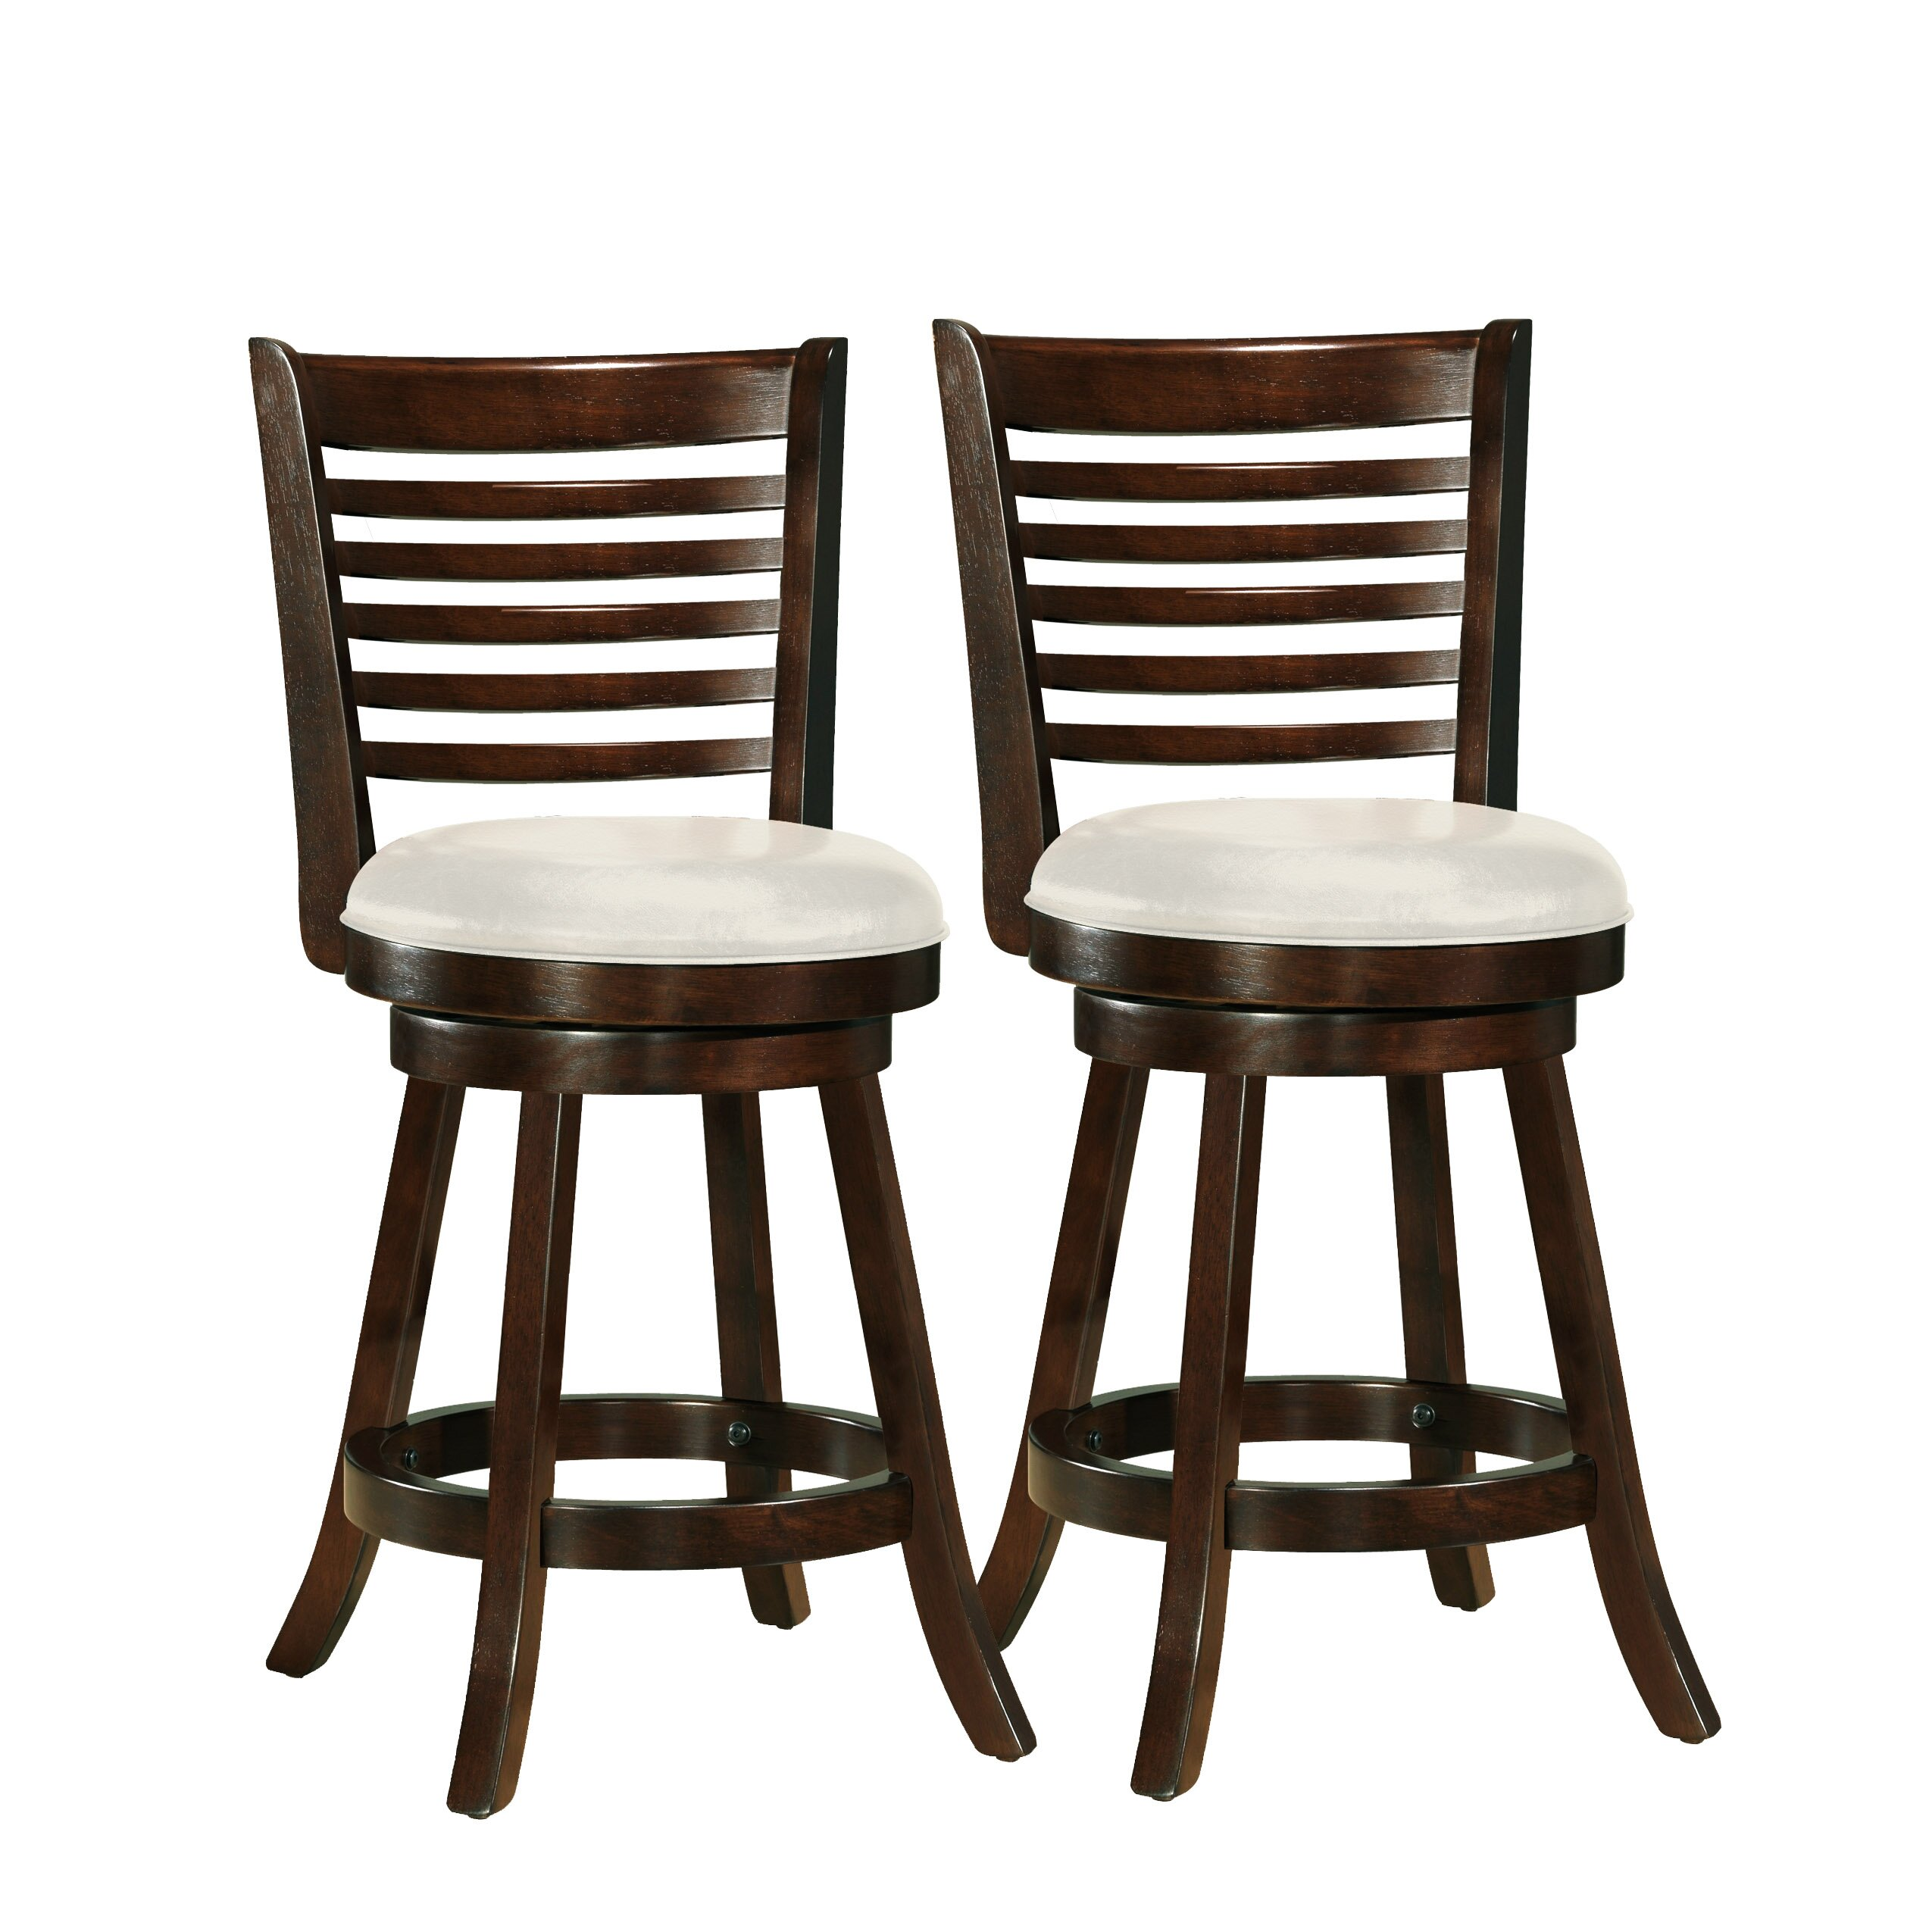 Amazing photo of  Woodgrove 24 Swivel Bar Stool with Cushion & Reviews Wayfair with #322115 color and 2550x2550 pixels